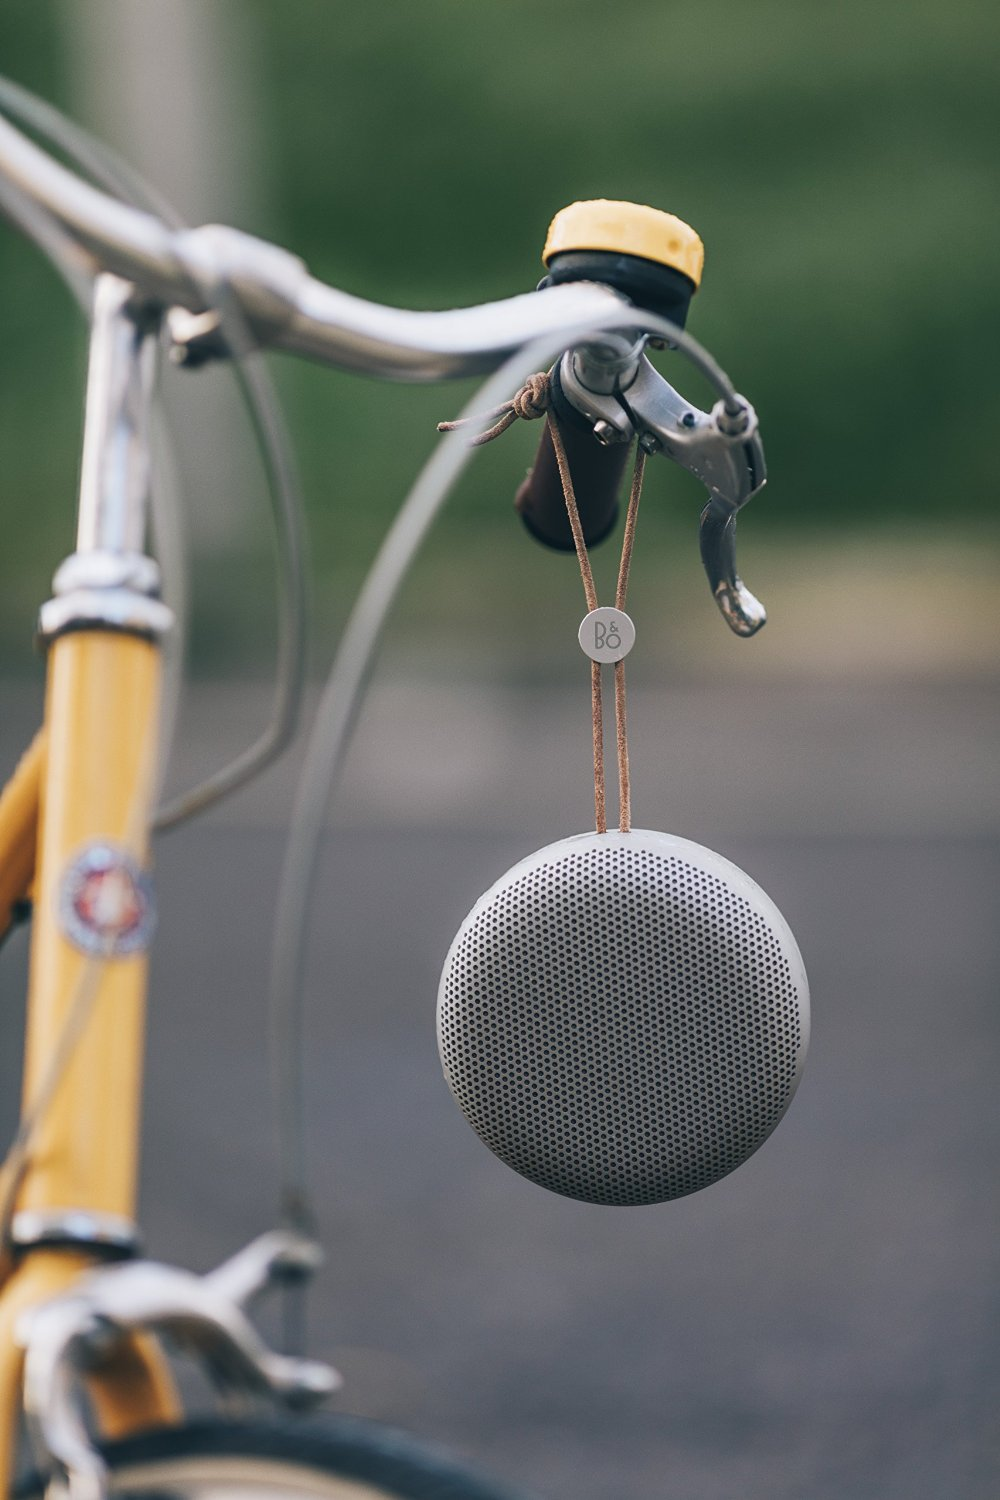 Inbuilt lanyard on B&O Beoplay A1 makes it the perfect bluetooth travel speaker.